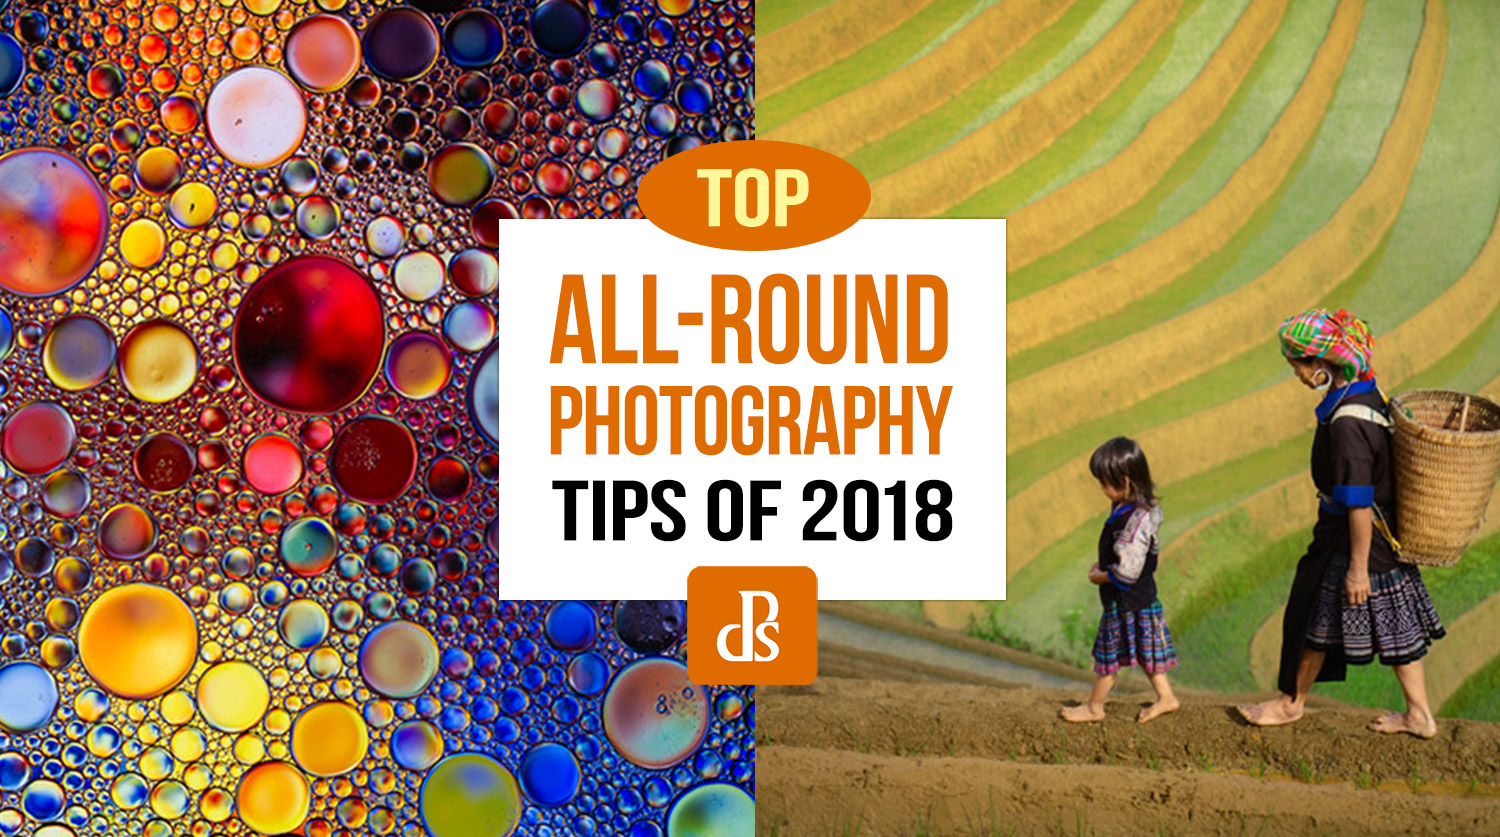 https://i1.wp.com/digital-photography-school.com/wp-content/uploads/2018/12/dps-top-photography-tips-2018.jpg?resize=1500%2C837&ssl=1